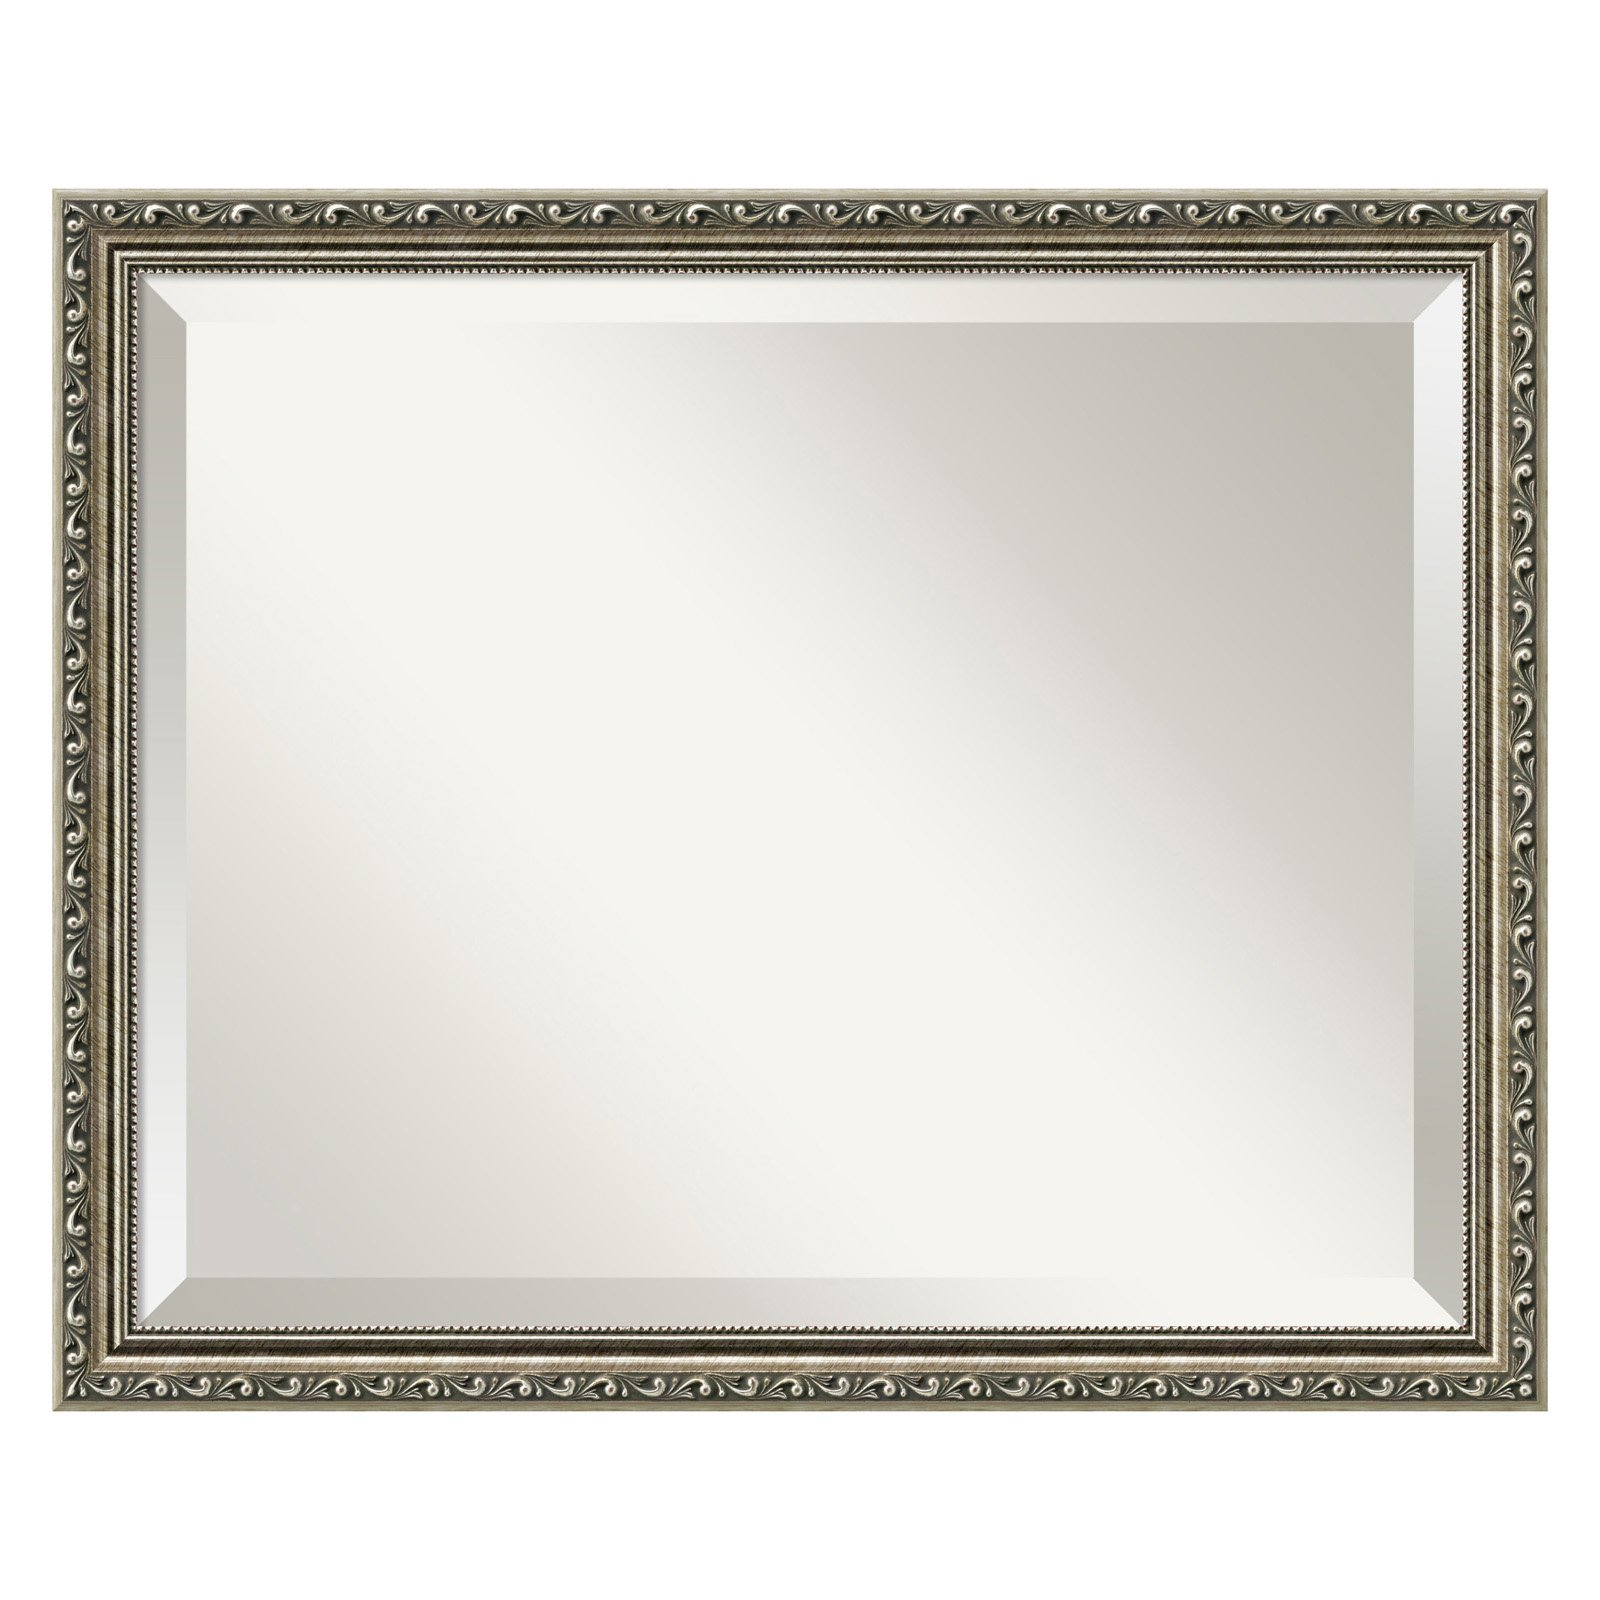 Parisian Silver Wall Mirror 22W x 18H in. by Amanti Art